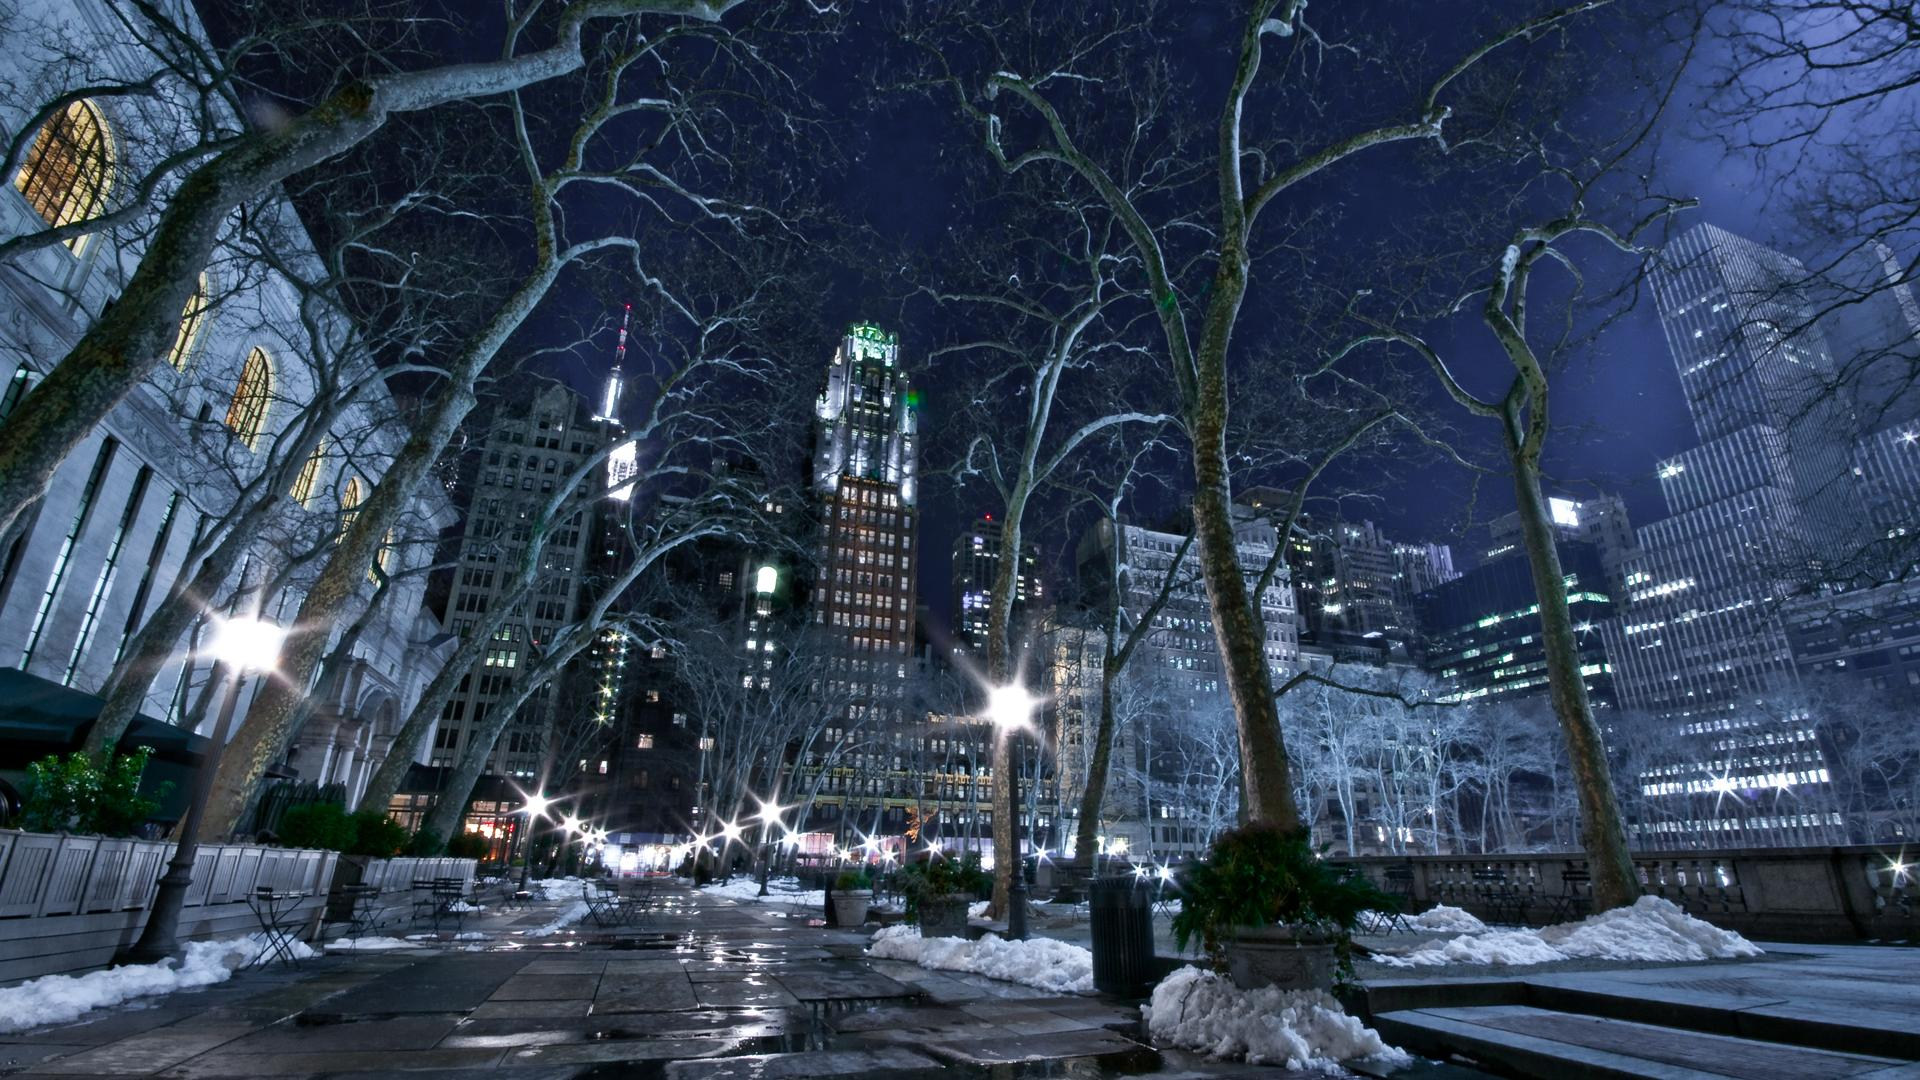 Winter city wallpaper high definition high quality widescreen - Snow night city wallpaper ...